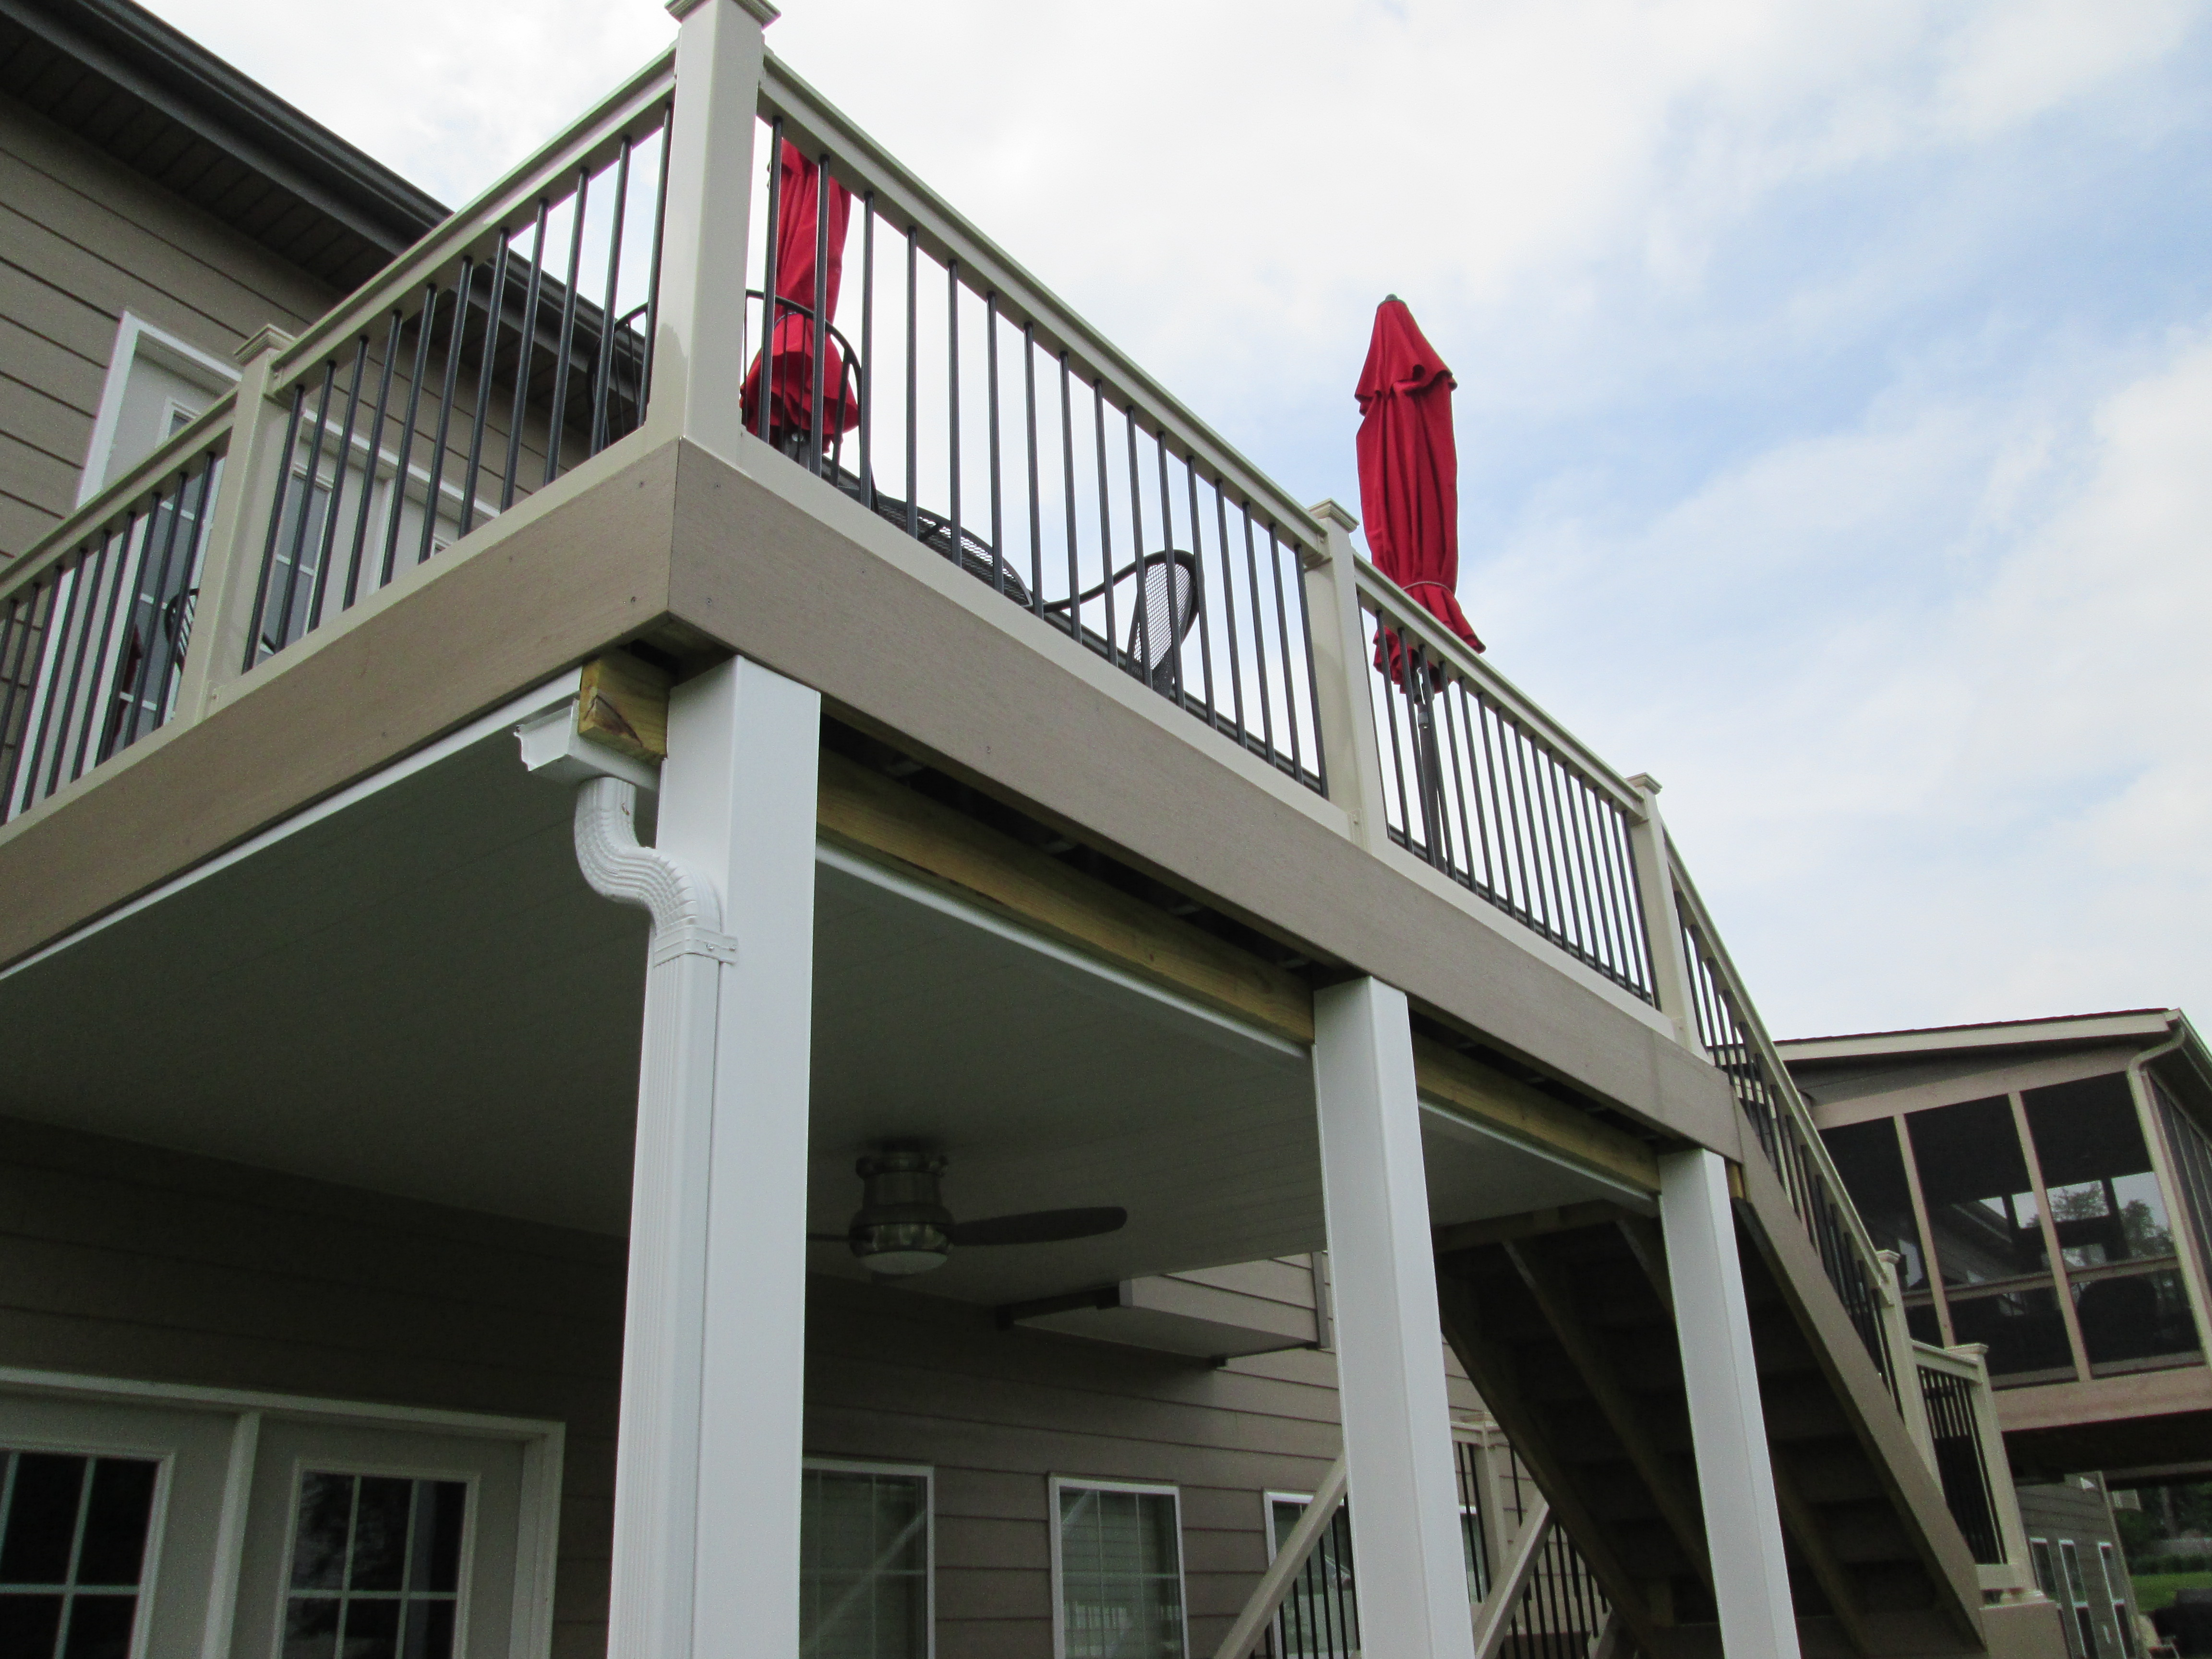 2014 outdoor living roundup year in review by archadeck - Ways enhancing balcony ...